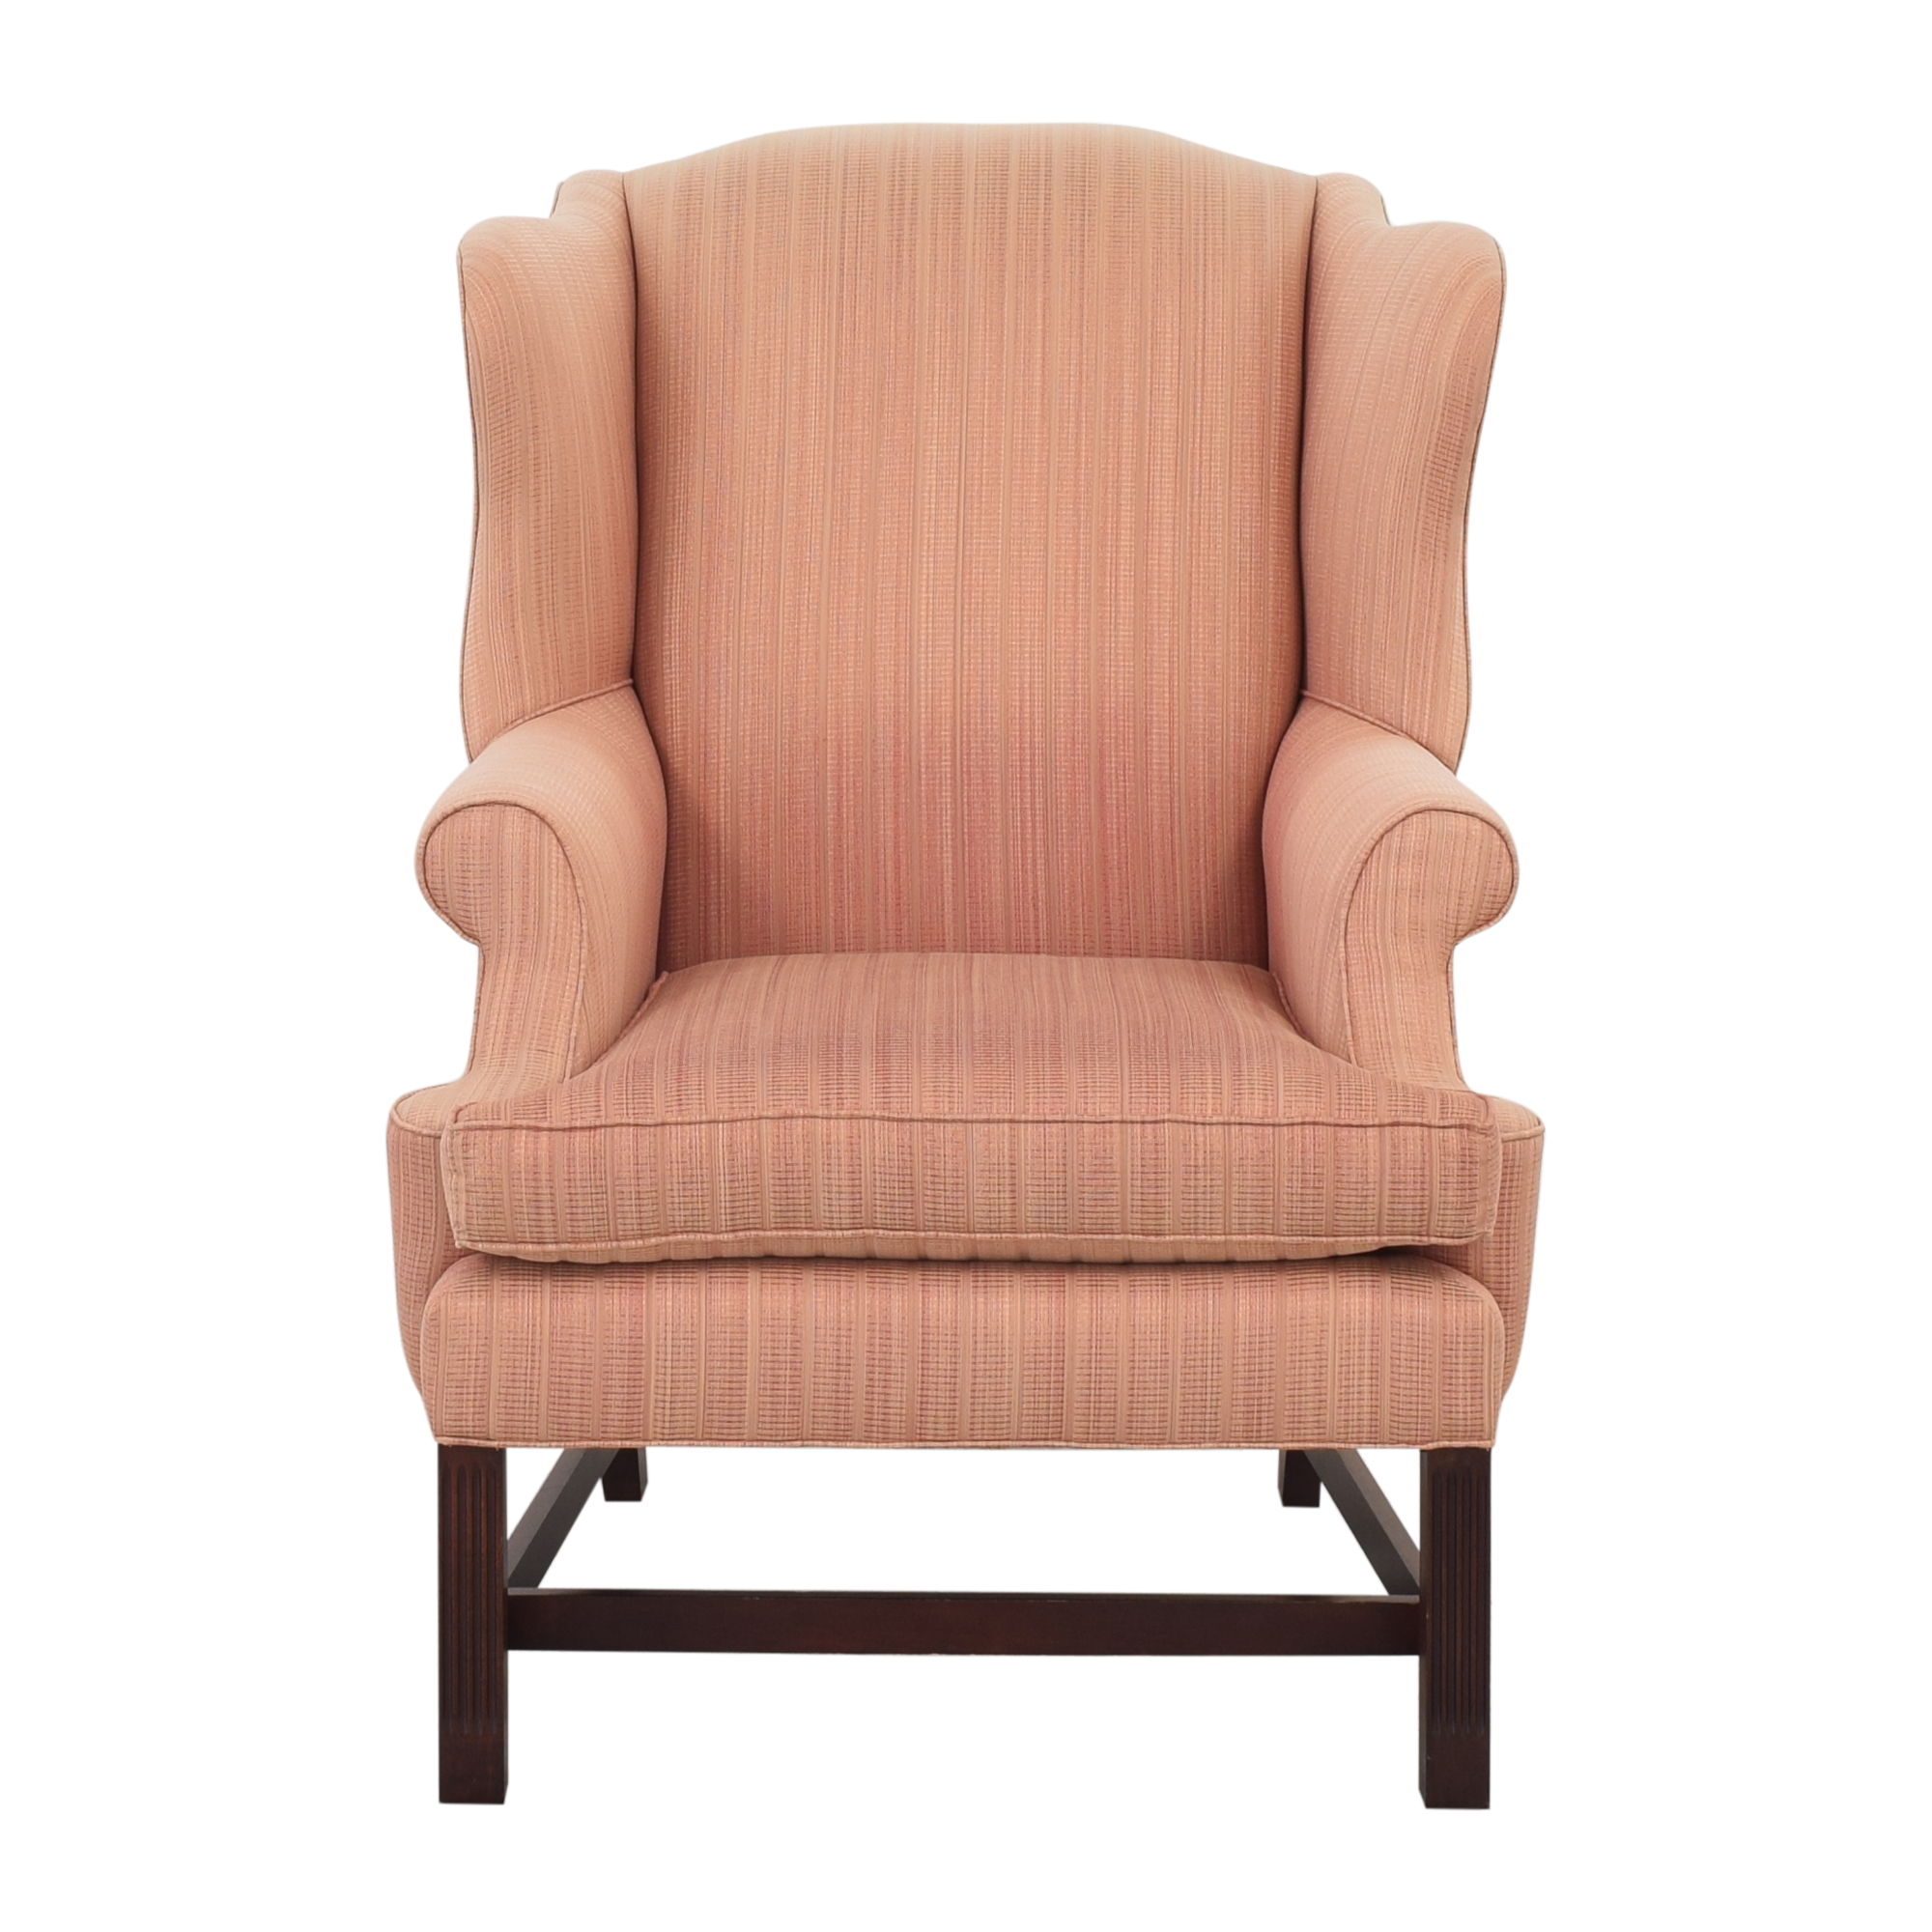 Henredon Furniture Henredon Furniture Wing Chair price